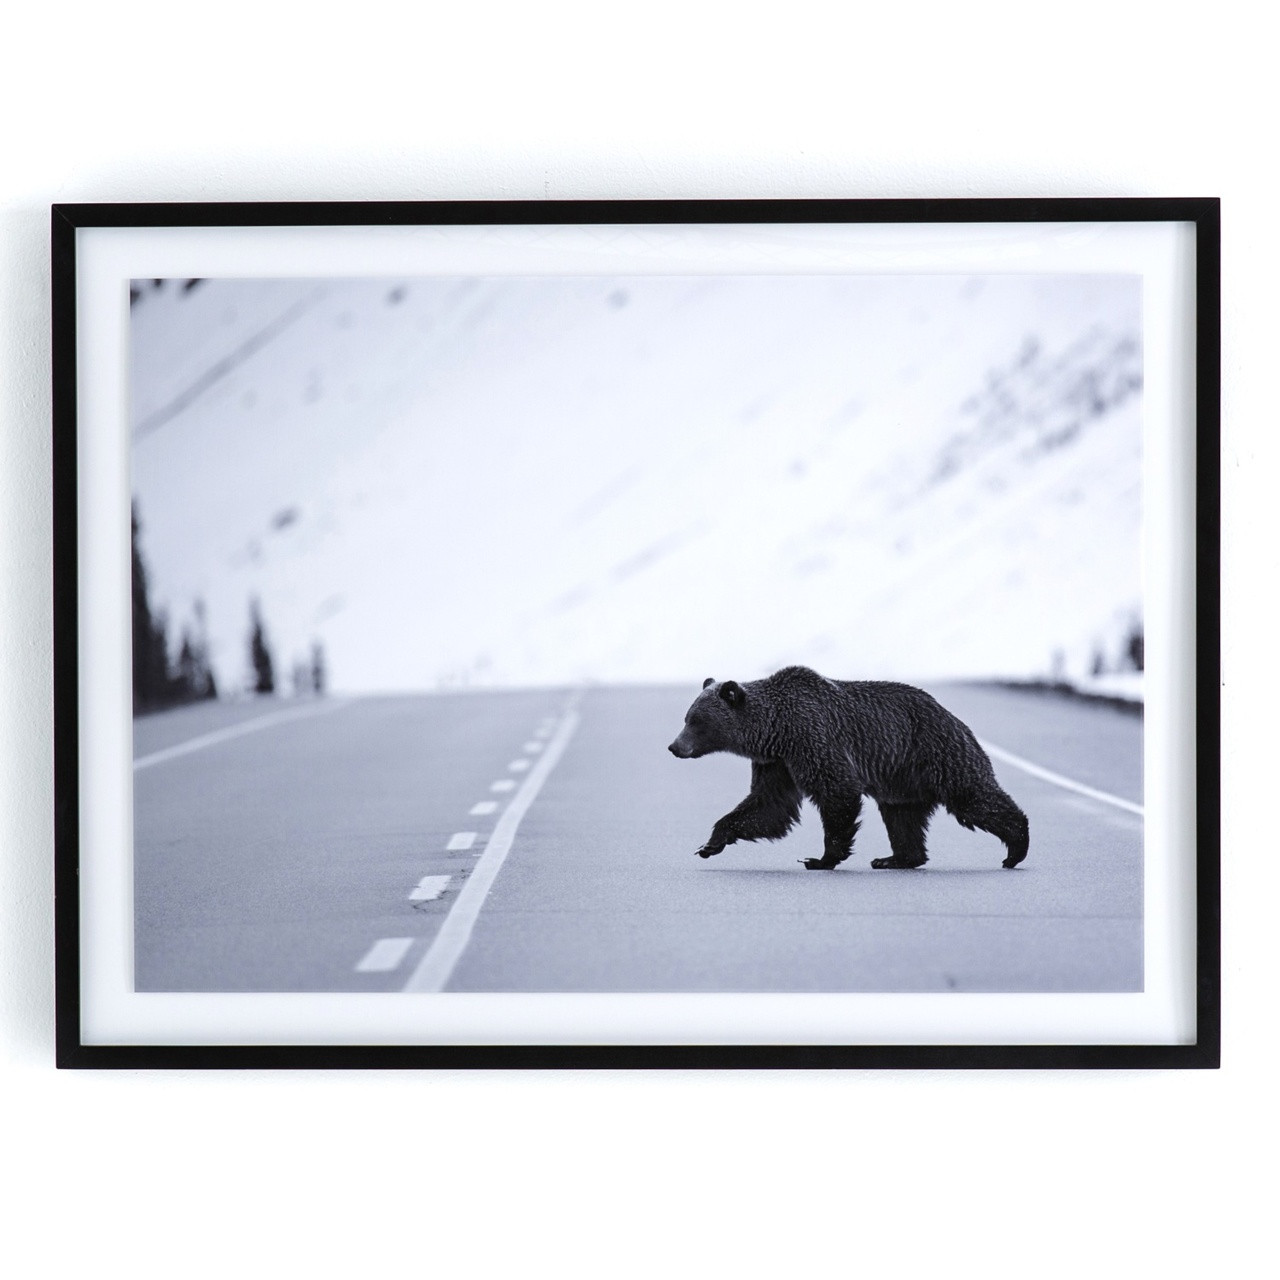 Grizzly Bear Black Wood Framed Wall Art 40